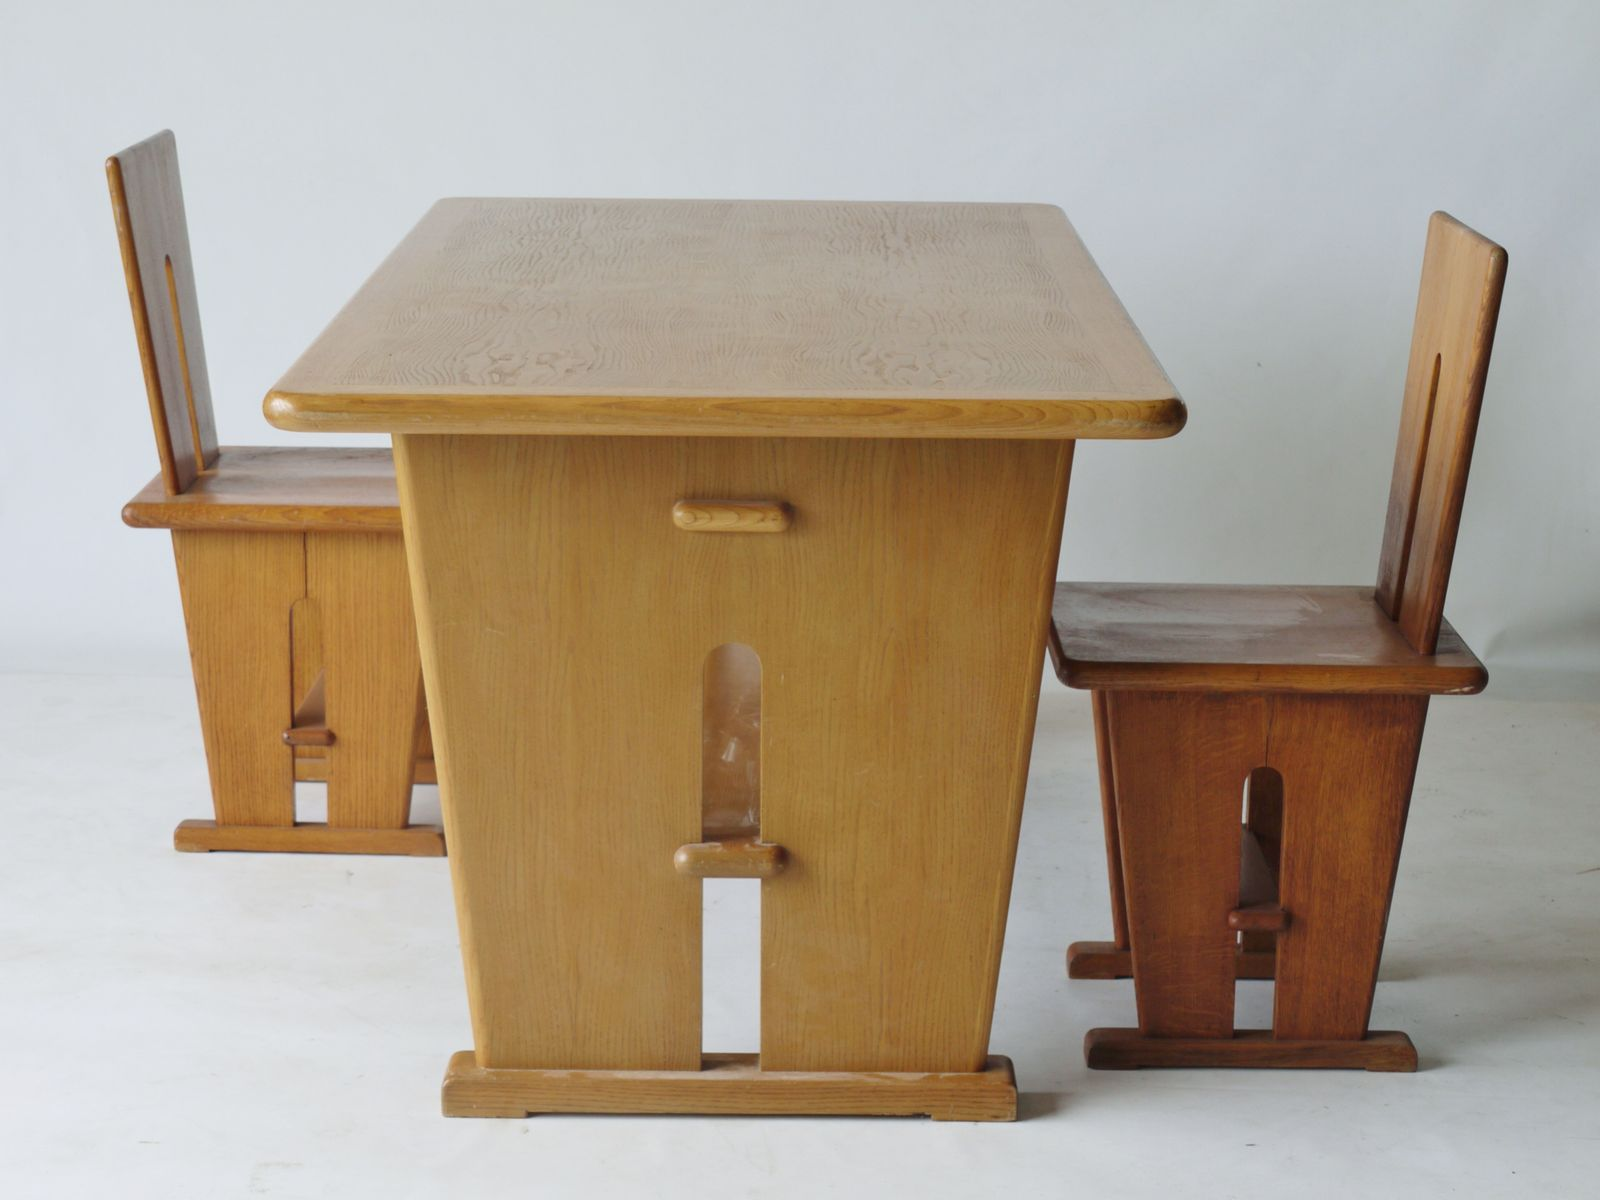 Double Sided Oak Desk and Two Chairs by Bas Van Pelt for